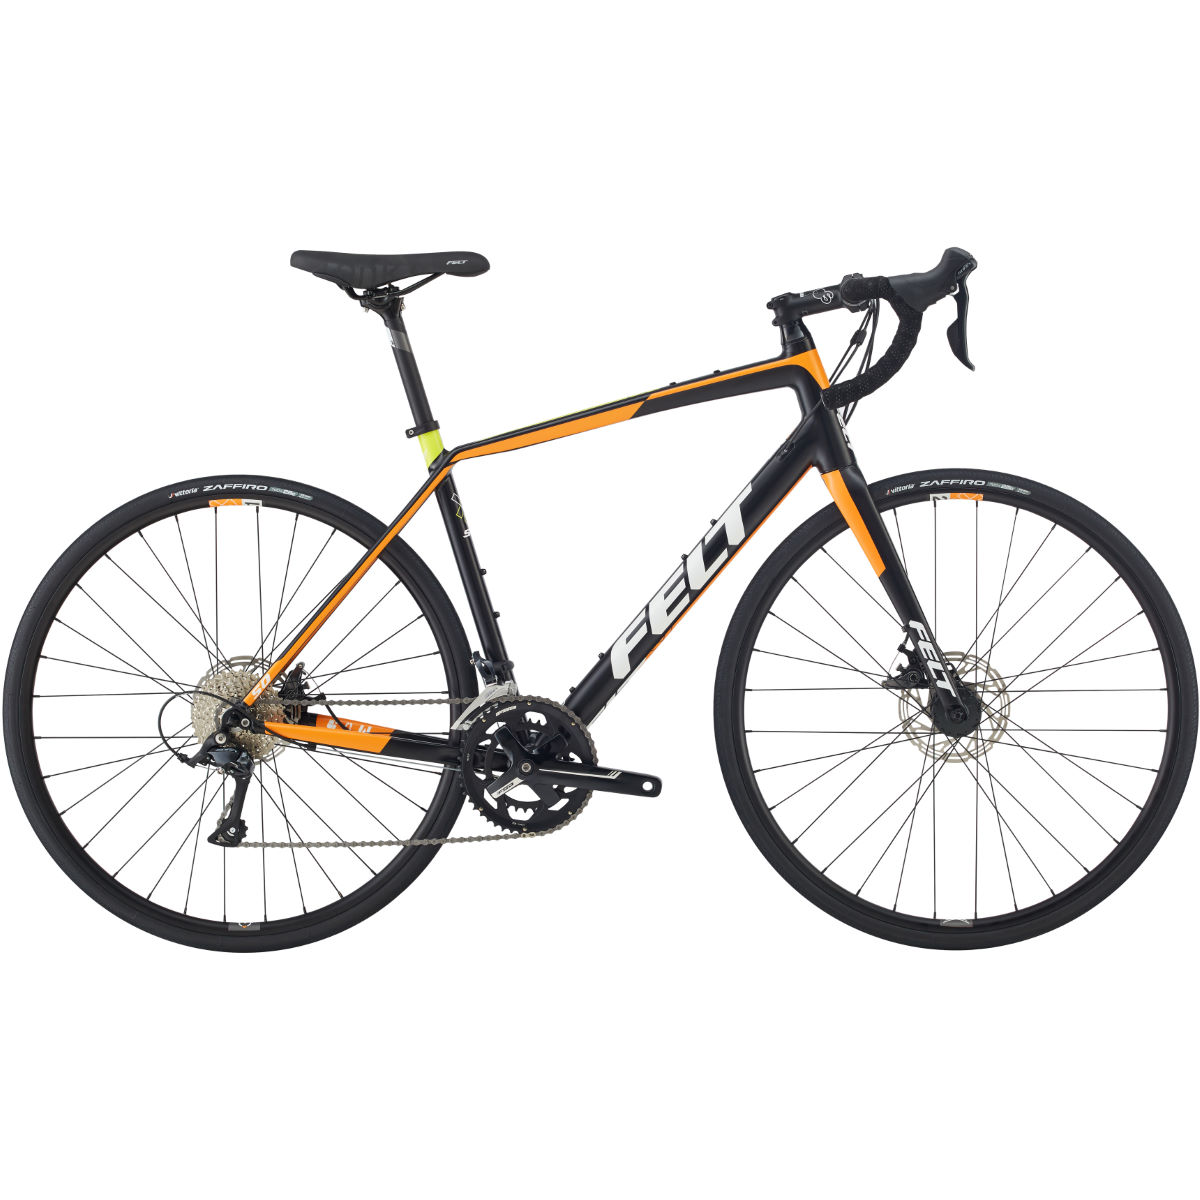 Vélo de route Felt VR50 (Sora, 2017) - 56cm Ex Demo Bike Noir/Orange Vélos de route